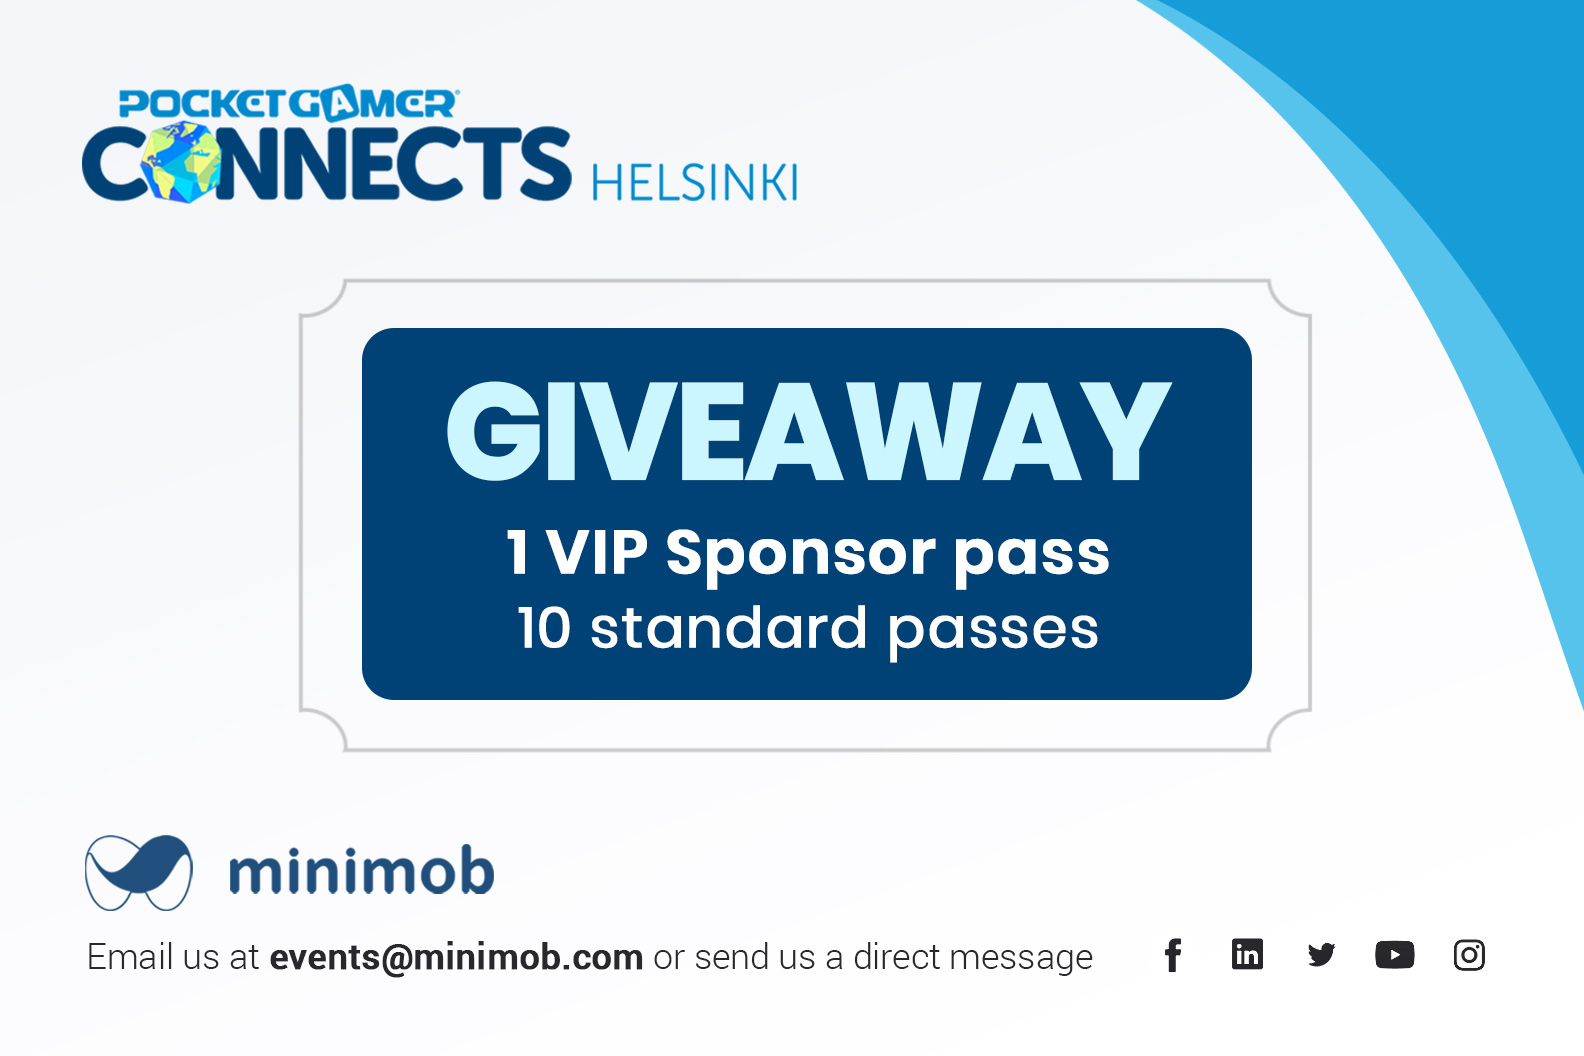 Minimob LinkedIn GIVEAWAY @ POCKET GAMER Connects Helsinki, Finland